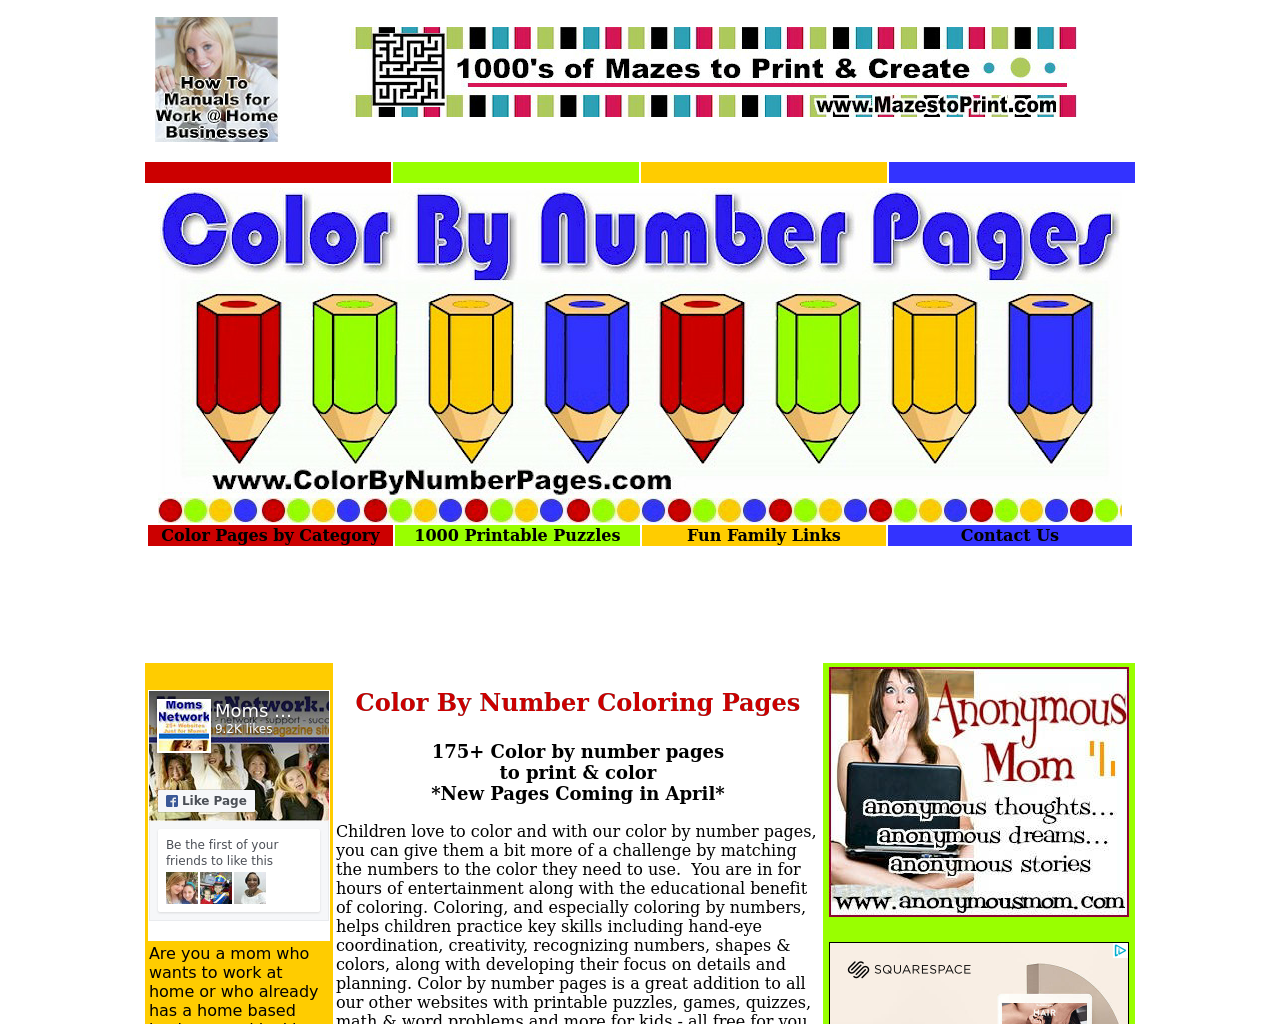 Color-By-Number-Pages-Advertising-Reviews-Pricing